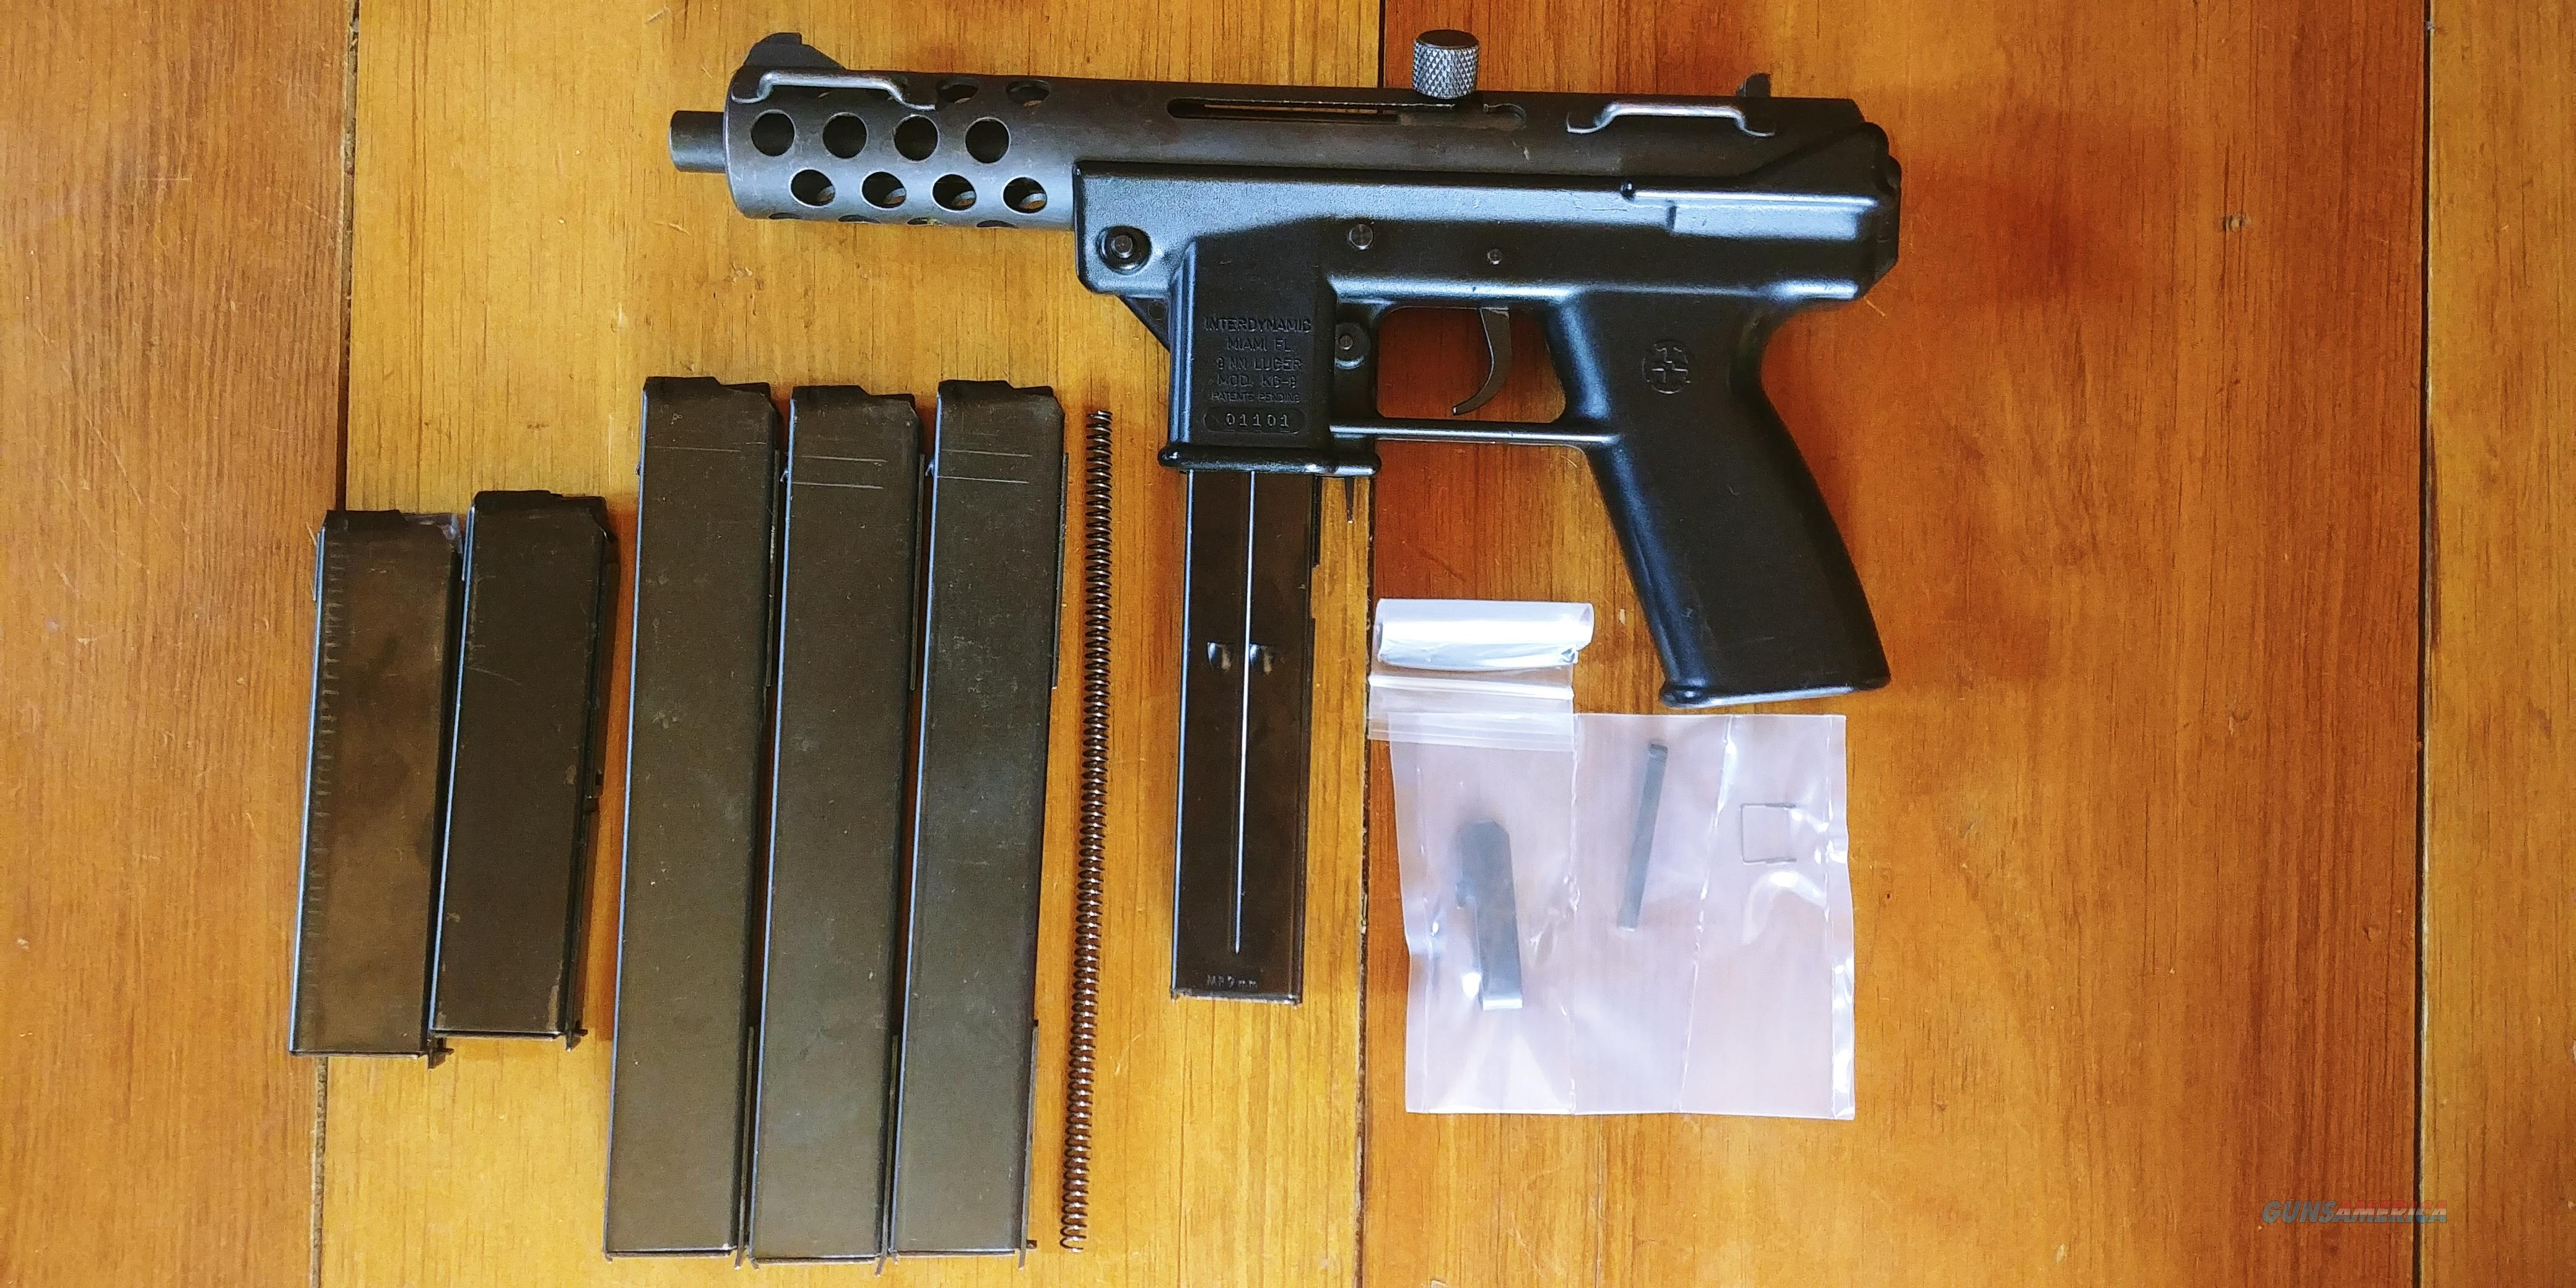 Interdynamic KG-9 in excellent condition for sale!  Guns > Pistols > Intratec Pistols